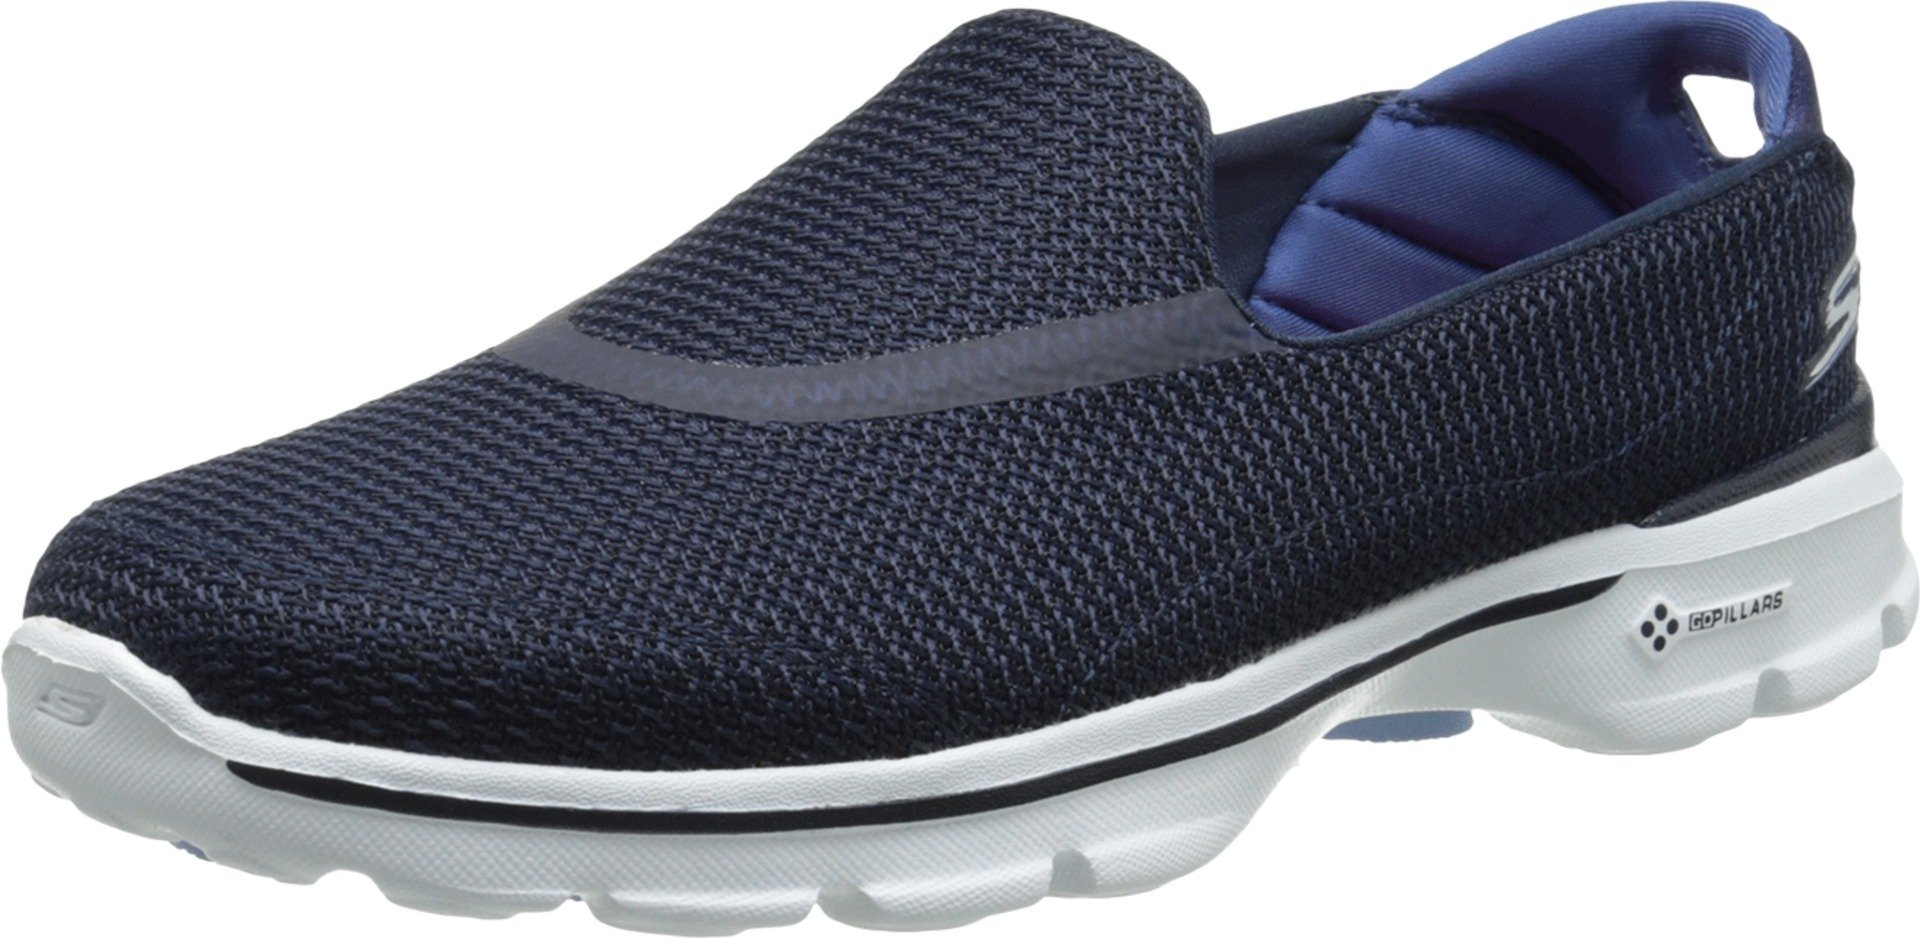 Skechers Performance Women's Go Walk 3 Slip-On Walking Shoe, Navy/White, 6 M US by Skechers